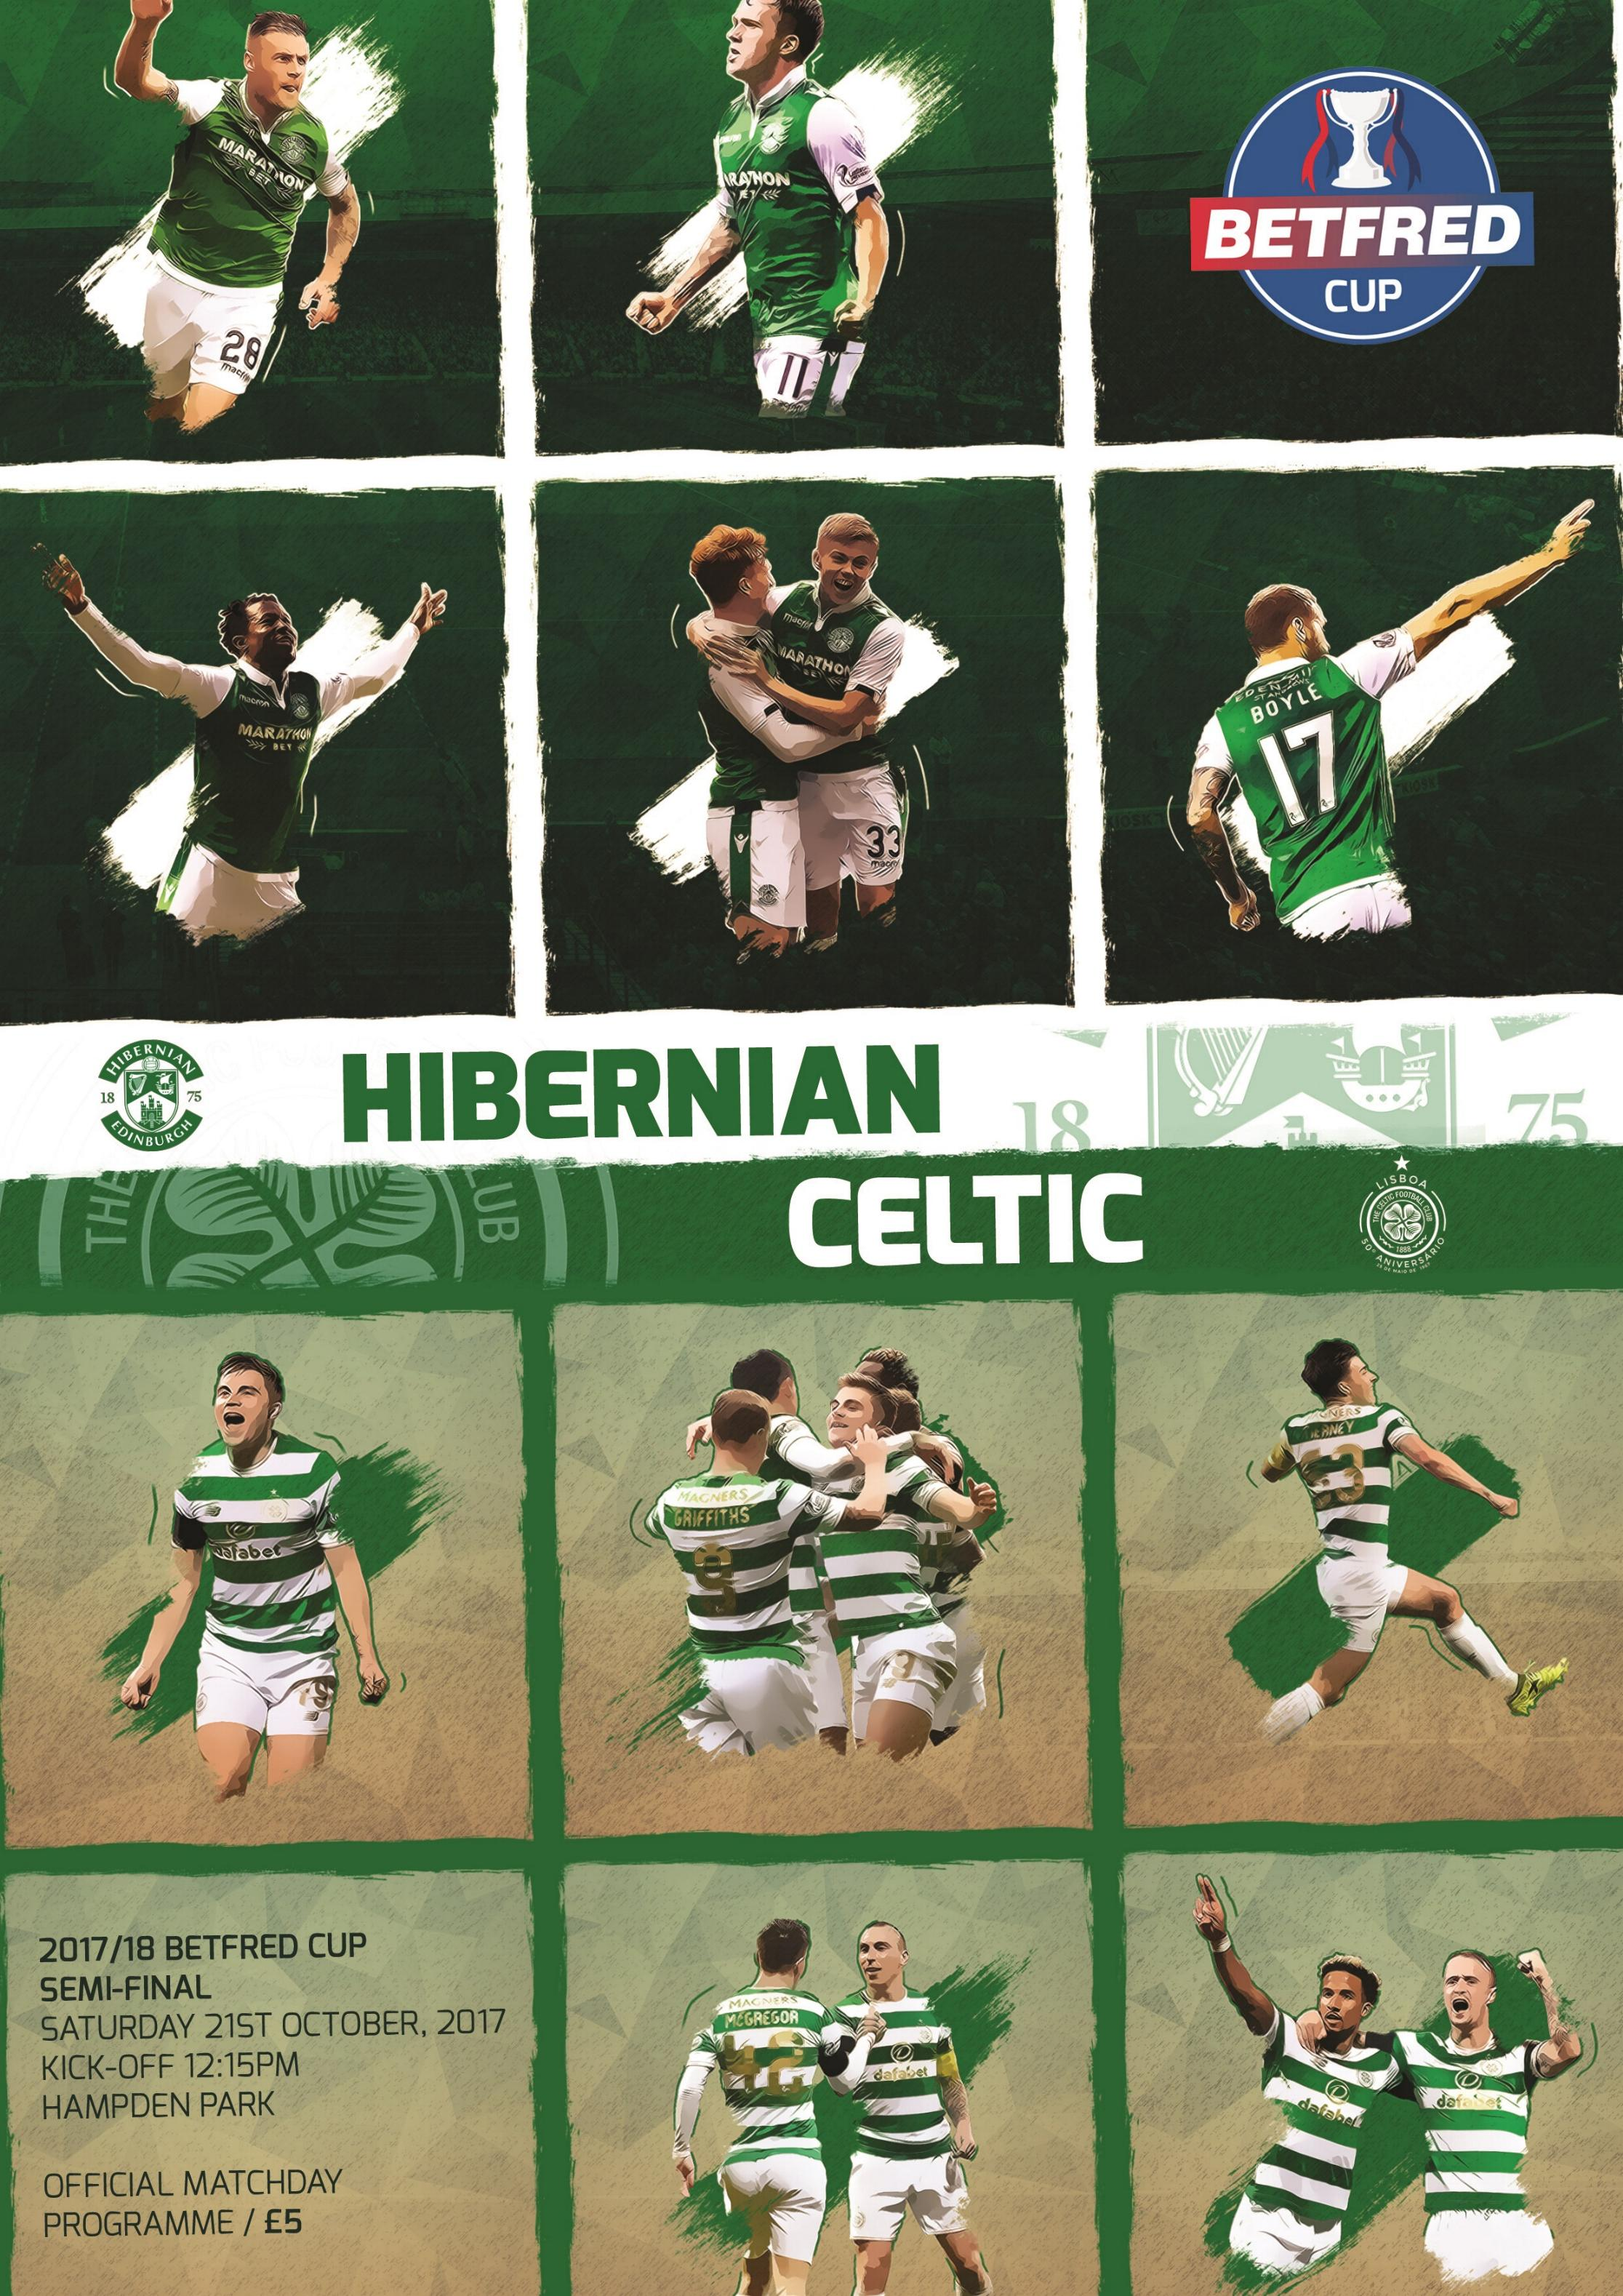 2017/18 SCOTTISH LEAGUE CUP SEMI-FINAL - CELTIC v HIBERNIAN